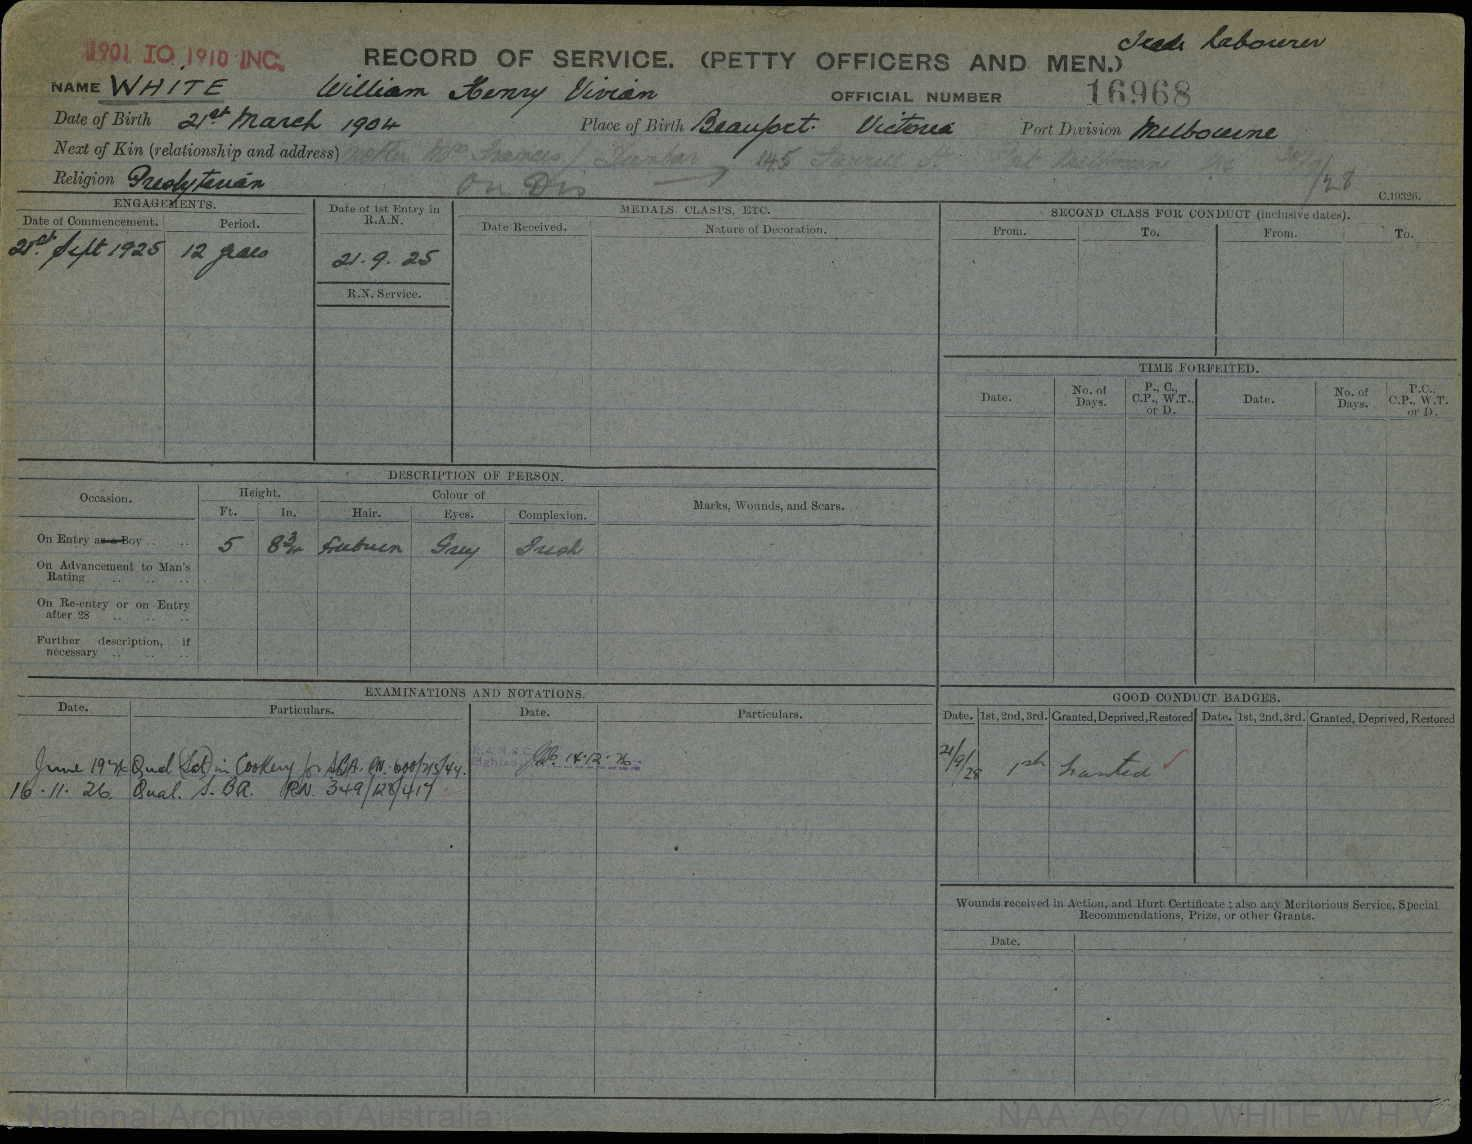 WHITE WILLIAM HENRY VIVIAN : Service Number - 16968 : Date of birth - 21 Mar 1904 : Place of birth - BEAUFORT VIC : Place of enlistment - MELBOURNE : Next of Kin - DANBAR FRANCES